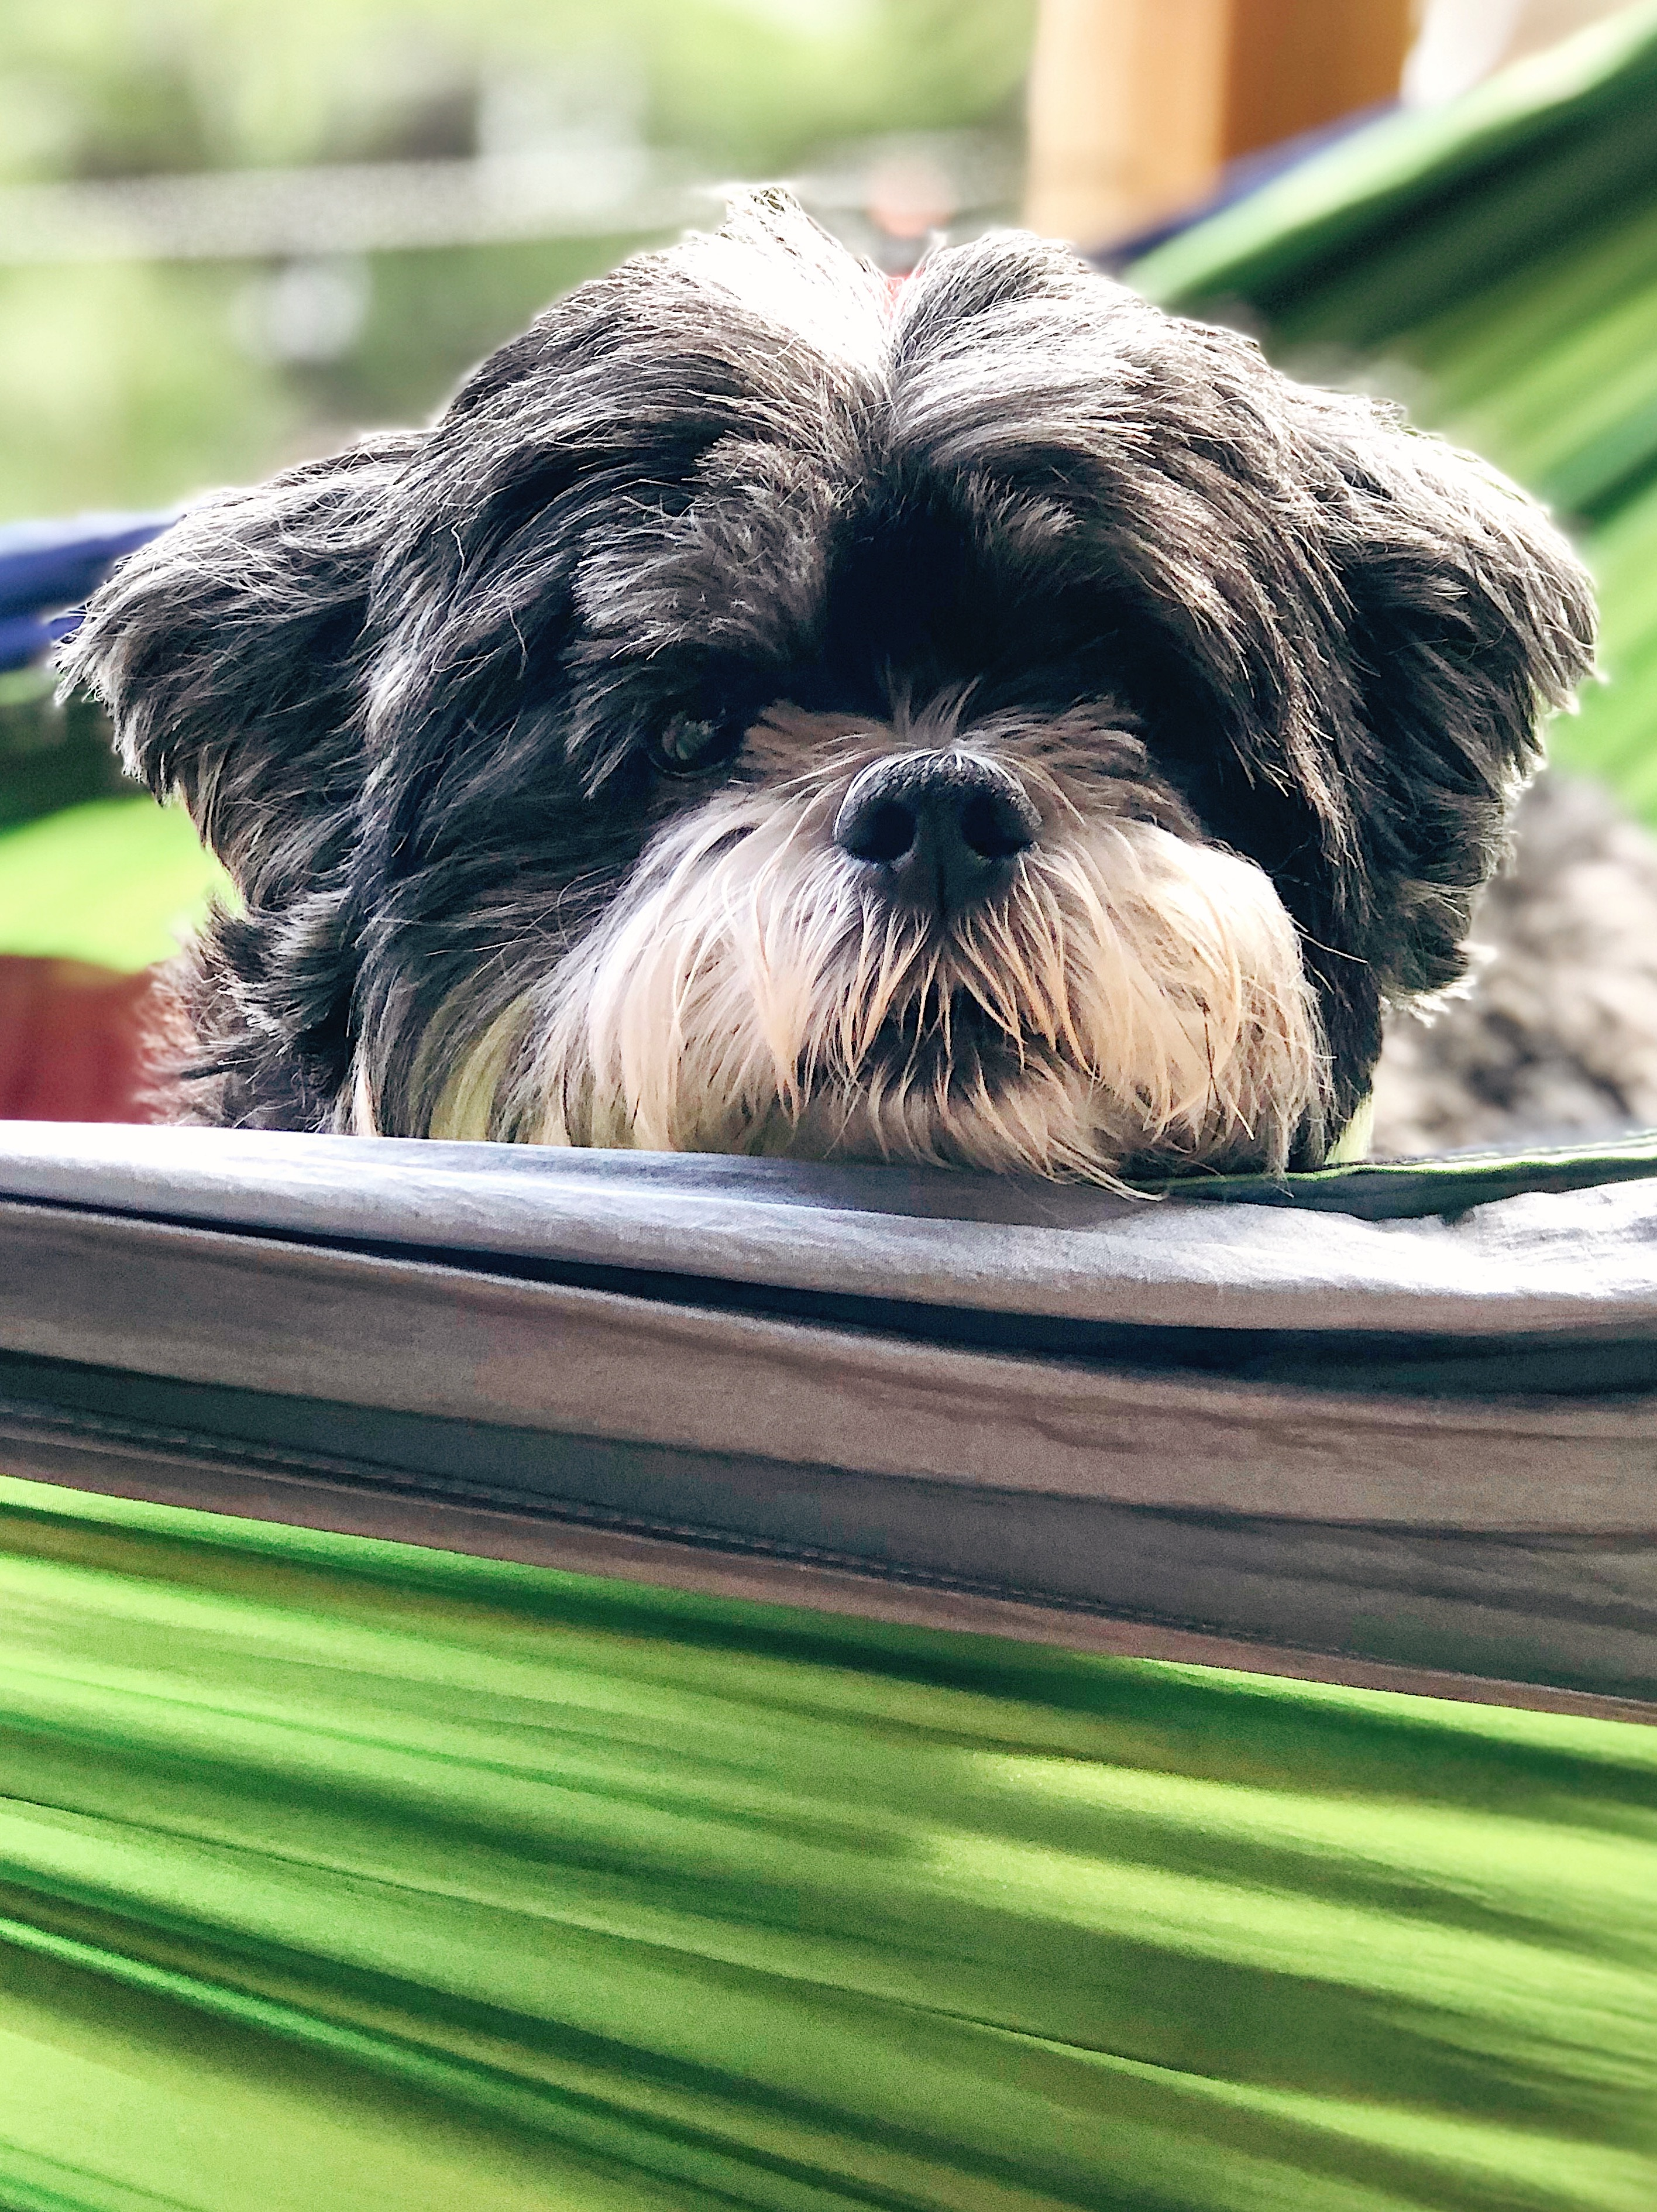 A photo of our dog Roscoe, a lhasa apso, peeking over the edge of our green hammock in the sun